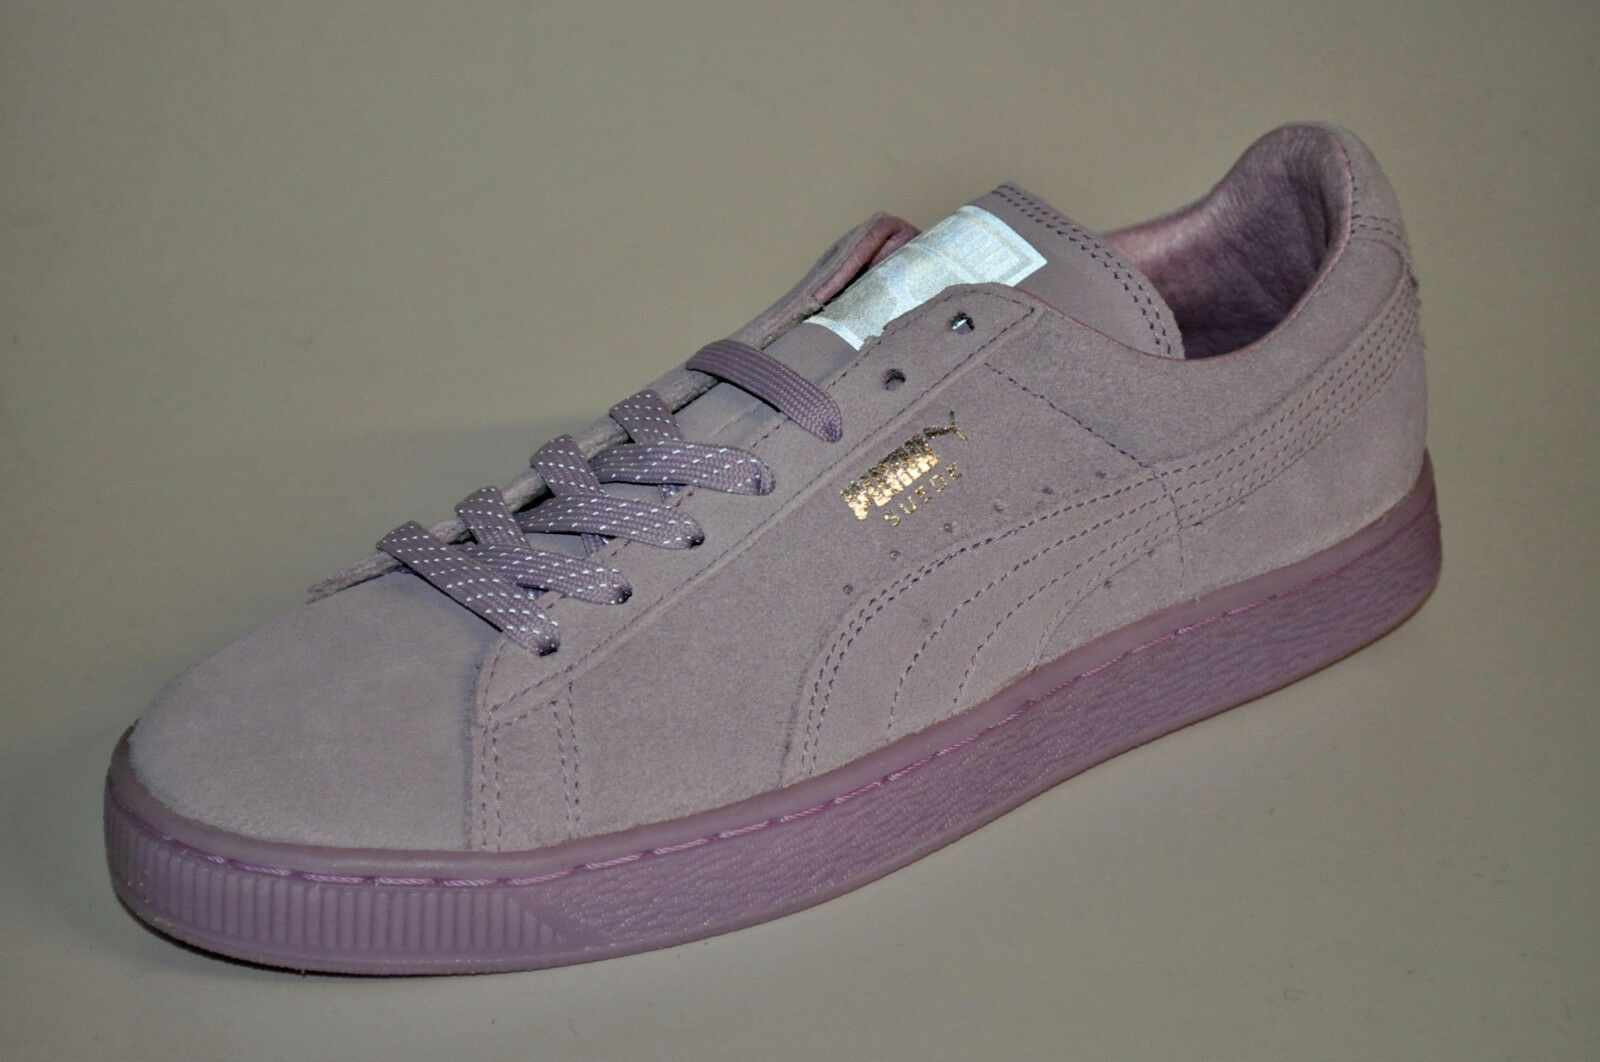 Puma Suede Classic 36210101 Lead Mono Ref Iced Lead 36210101 Orchid Bloom Silver d04c2b